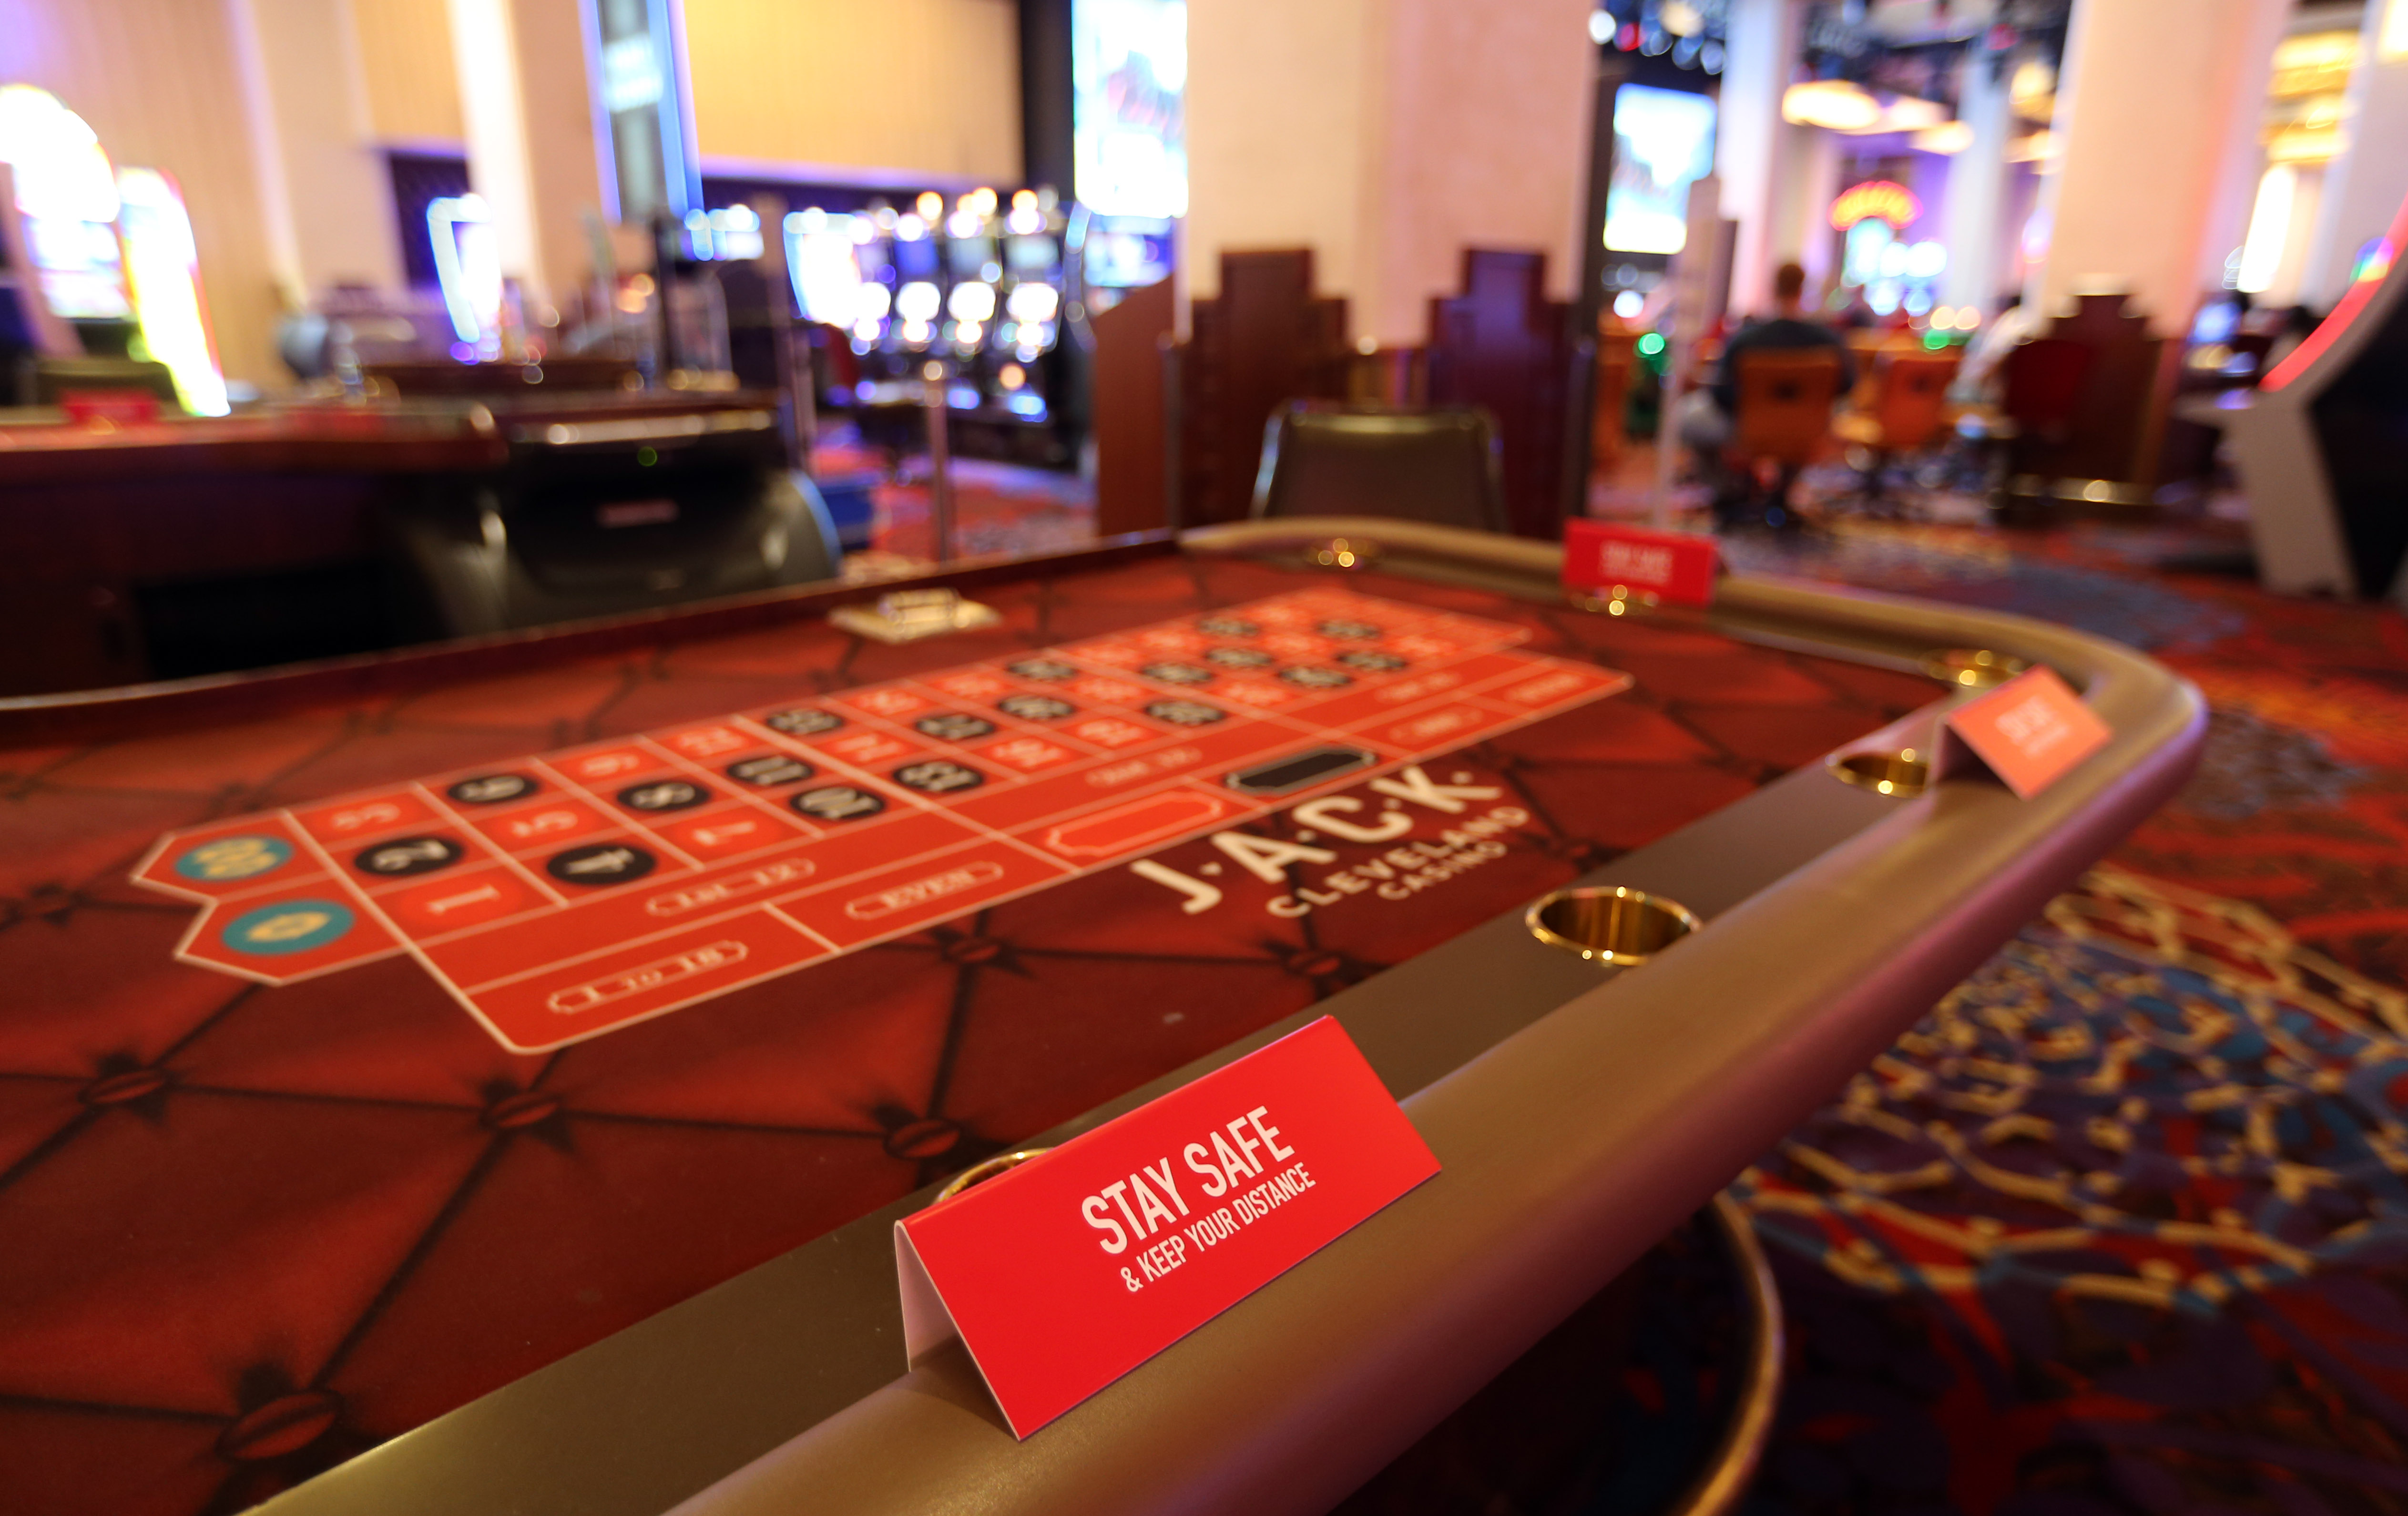 First Look At Jack Cleveland Casino Thistledown Racino Before Friday S Re Opening From Coronavirus Shutdown Photos Video Cleveland Com